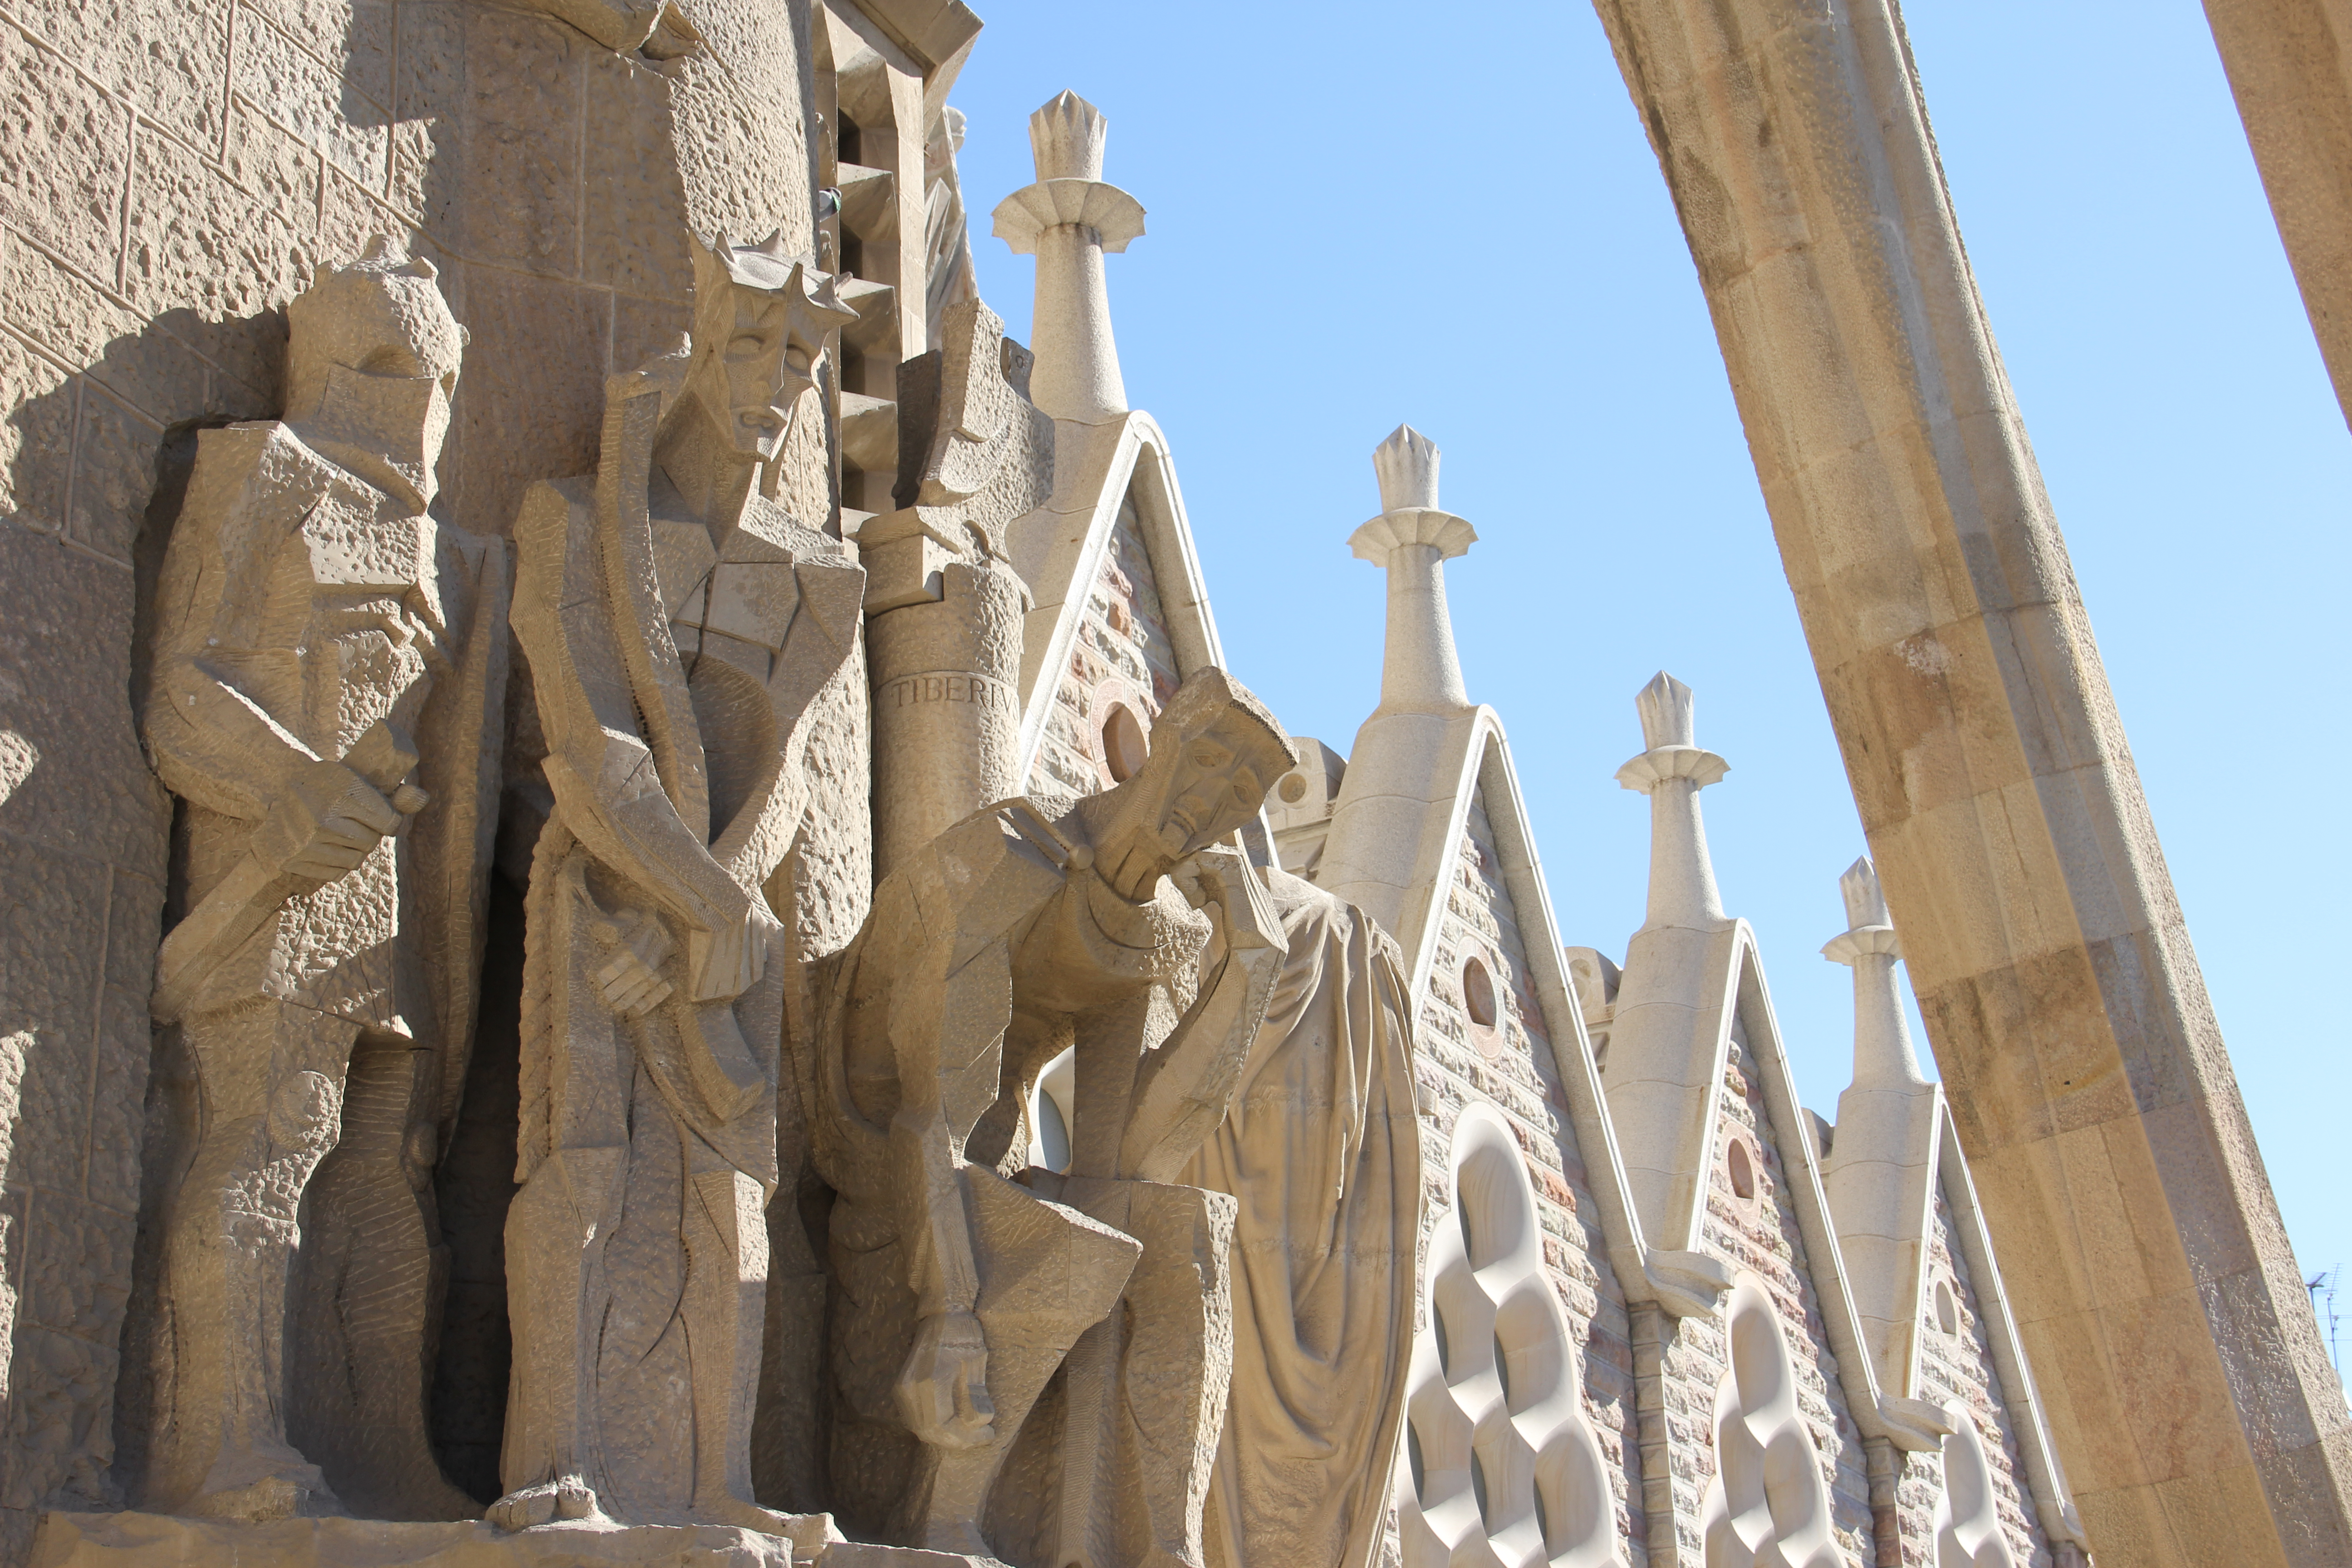 Barcelona's Biggest Tourist Attraction La Sagrada Familia